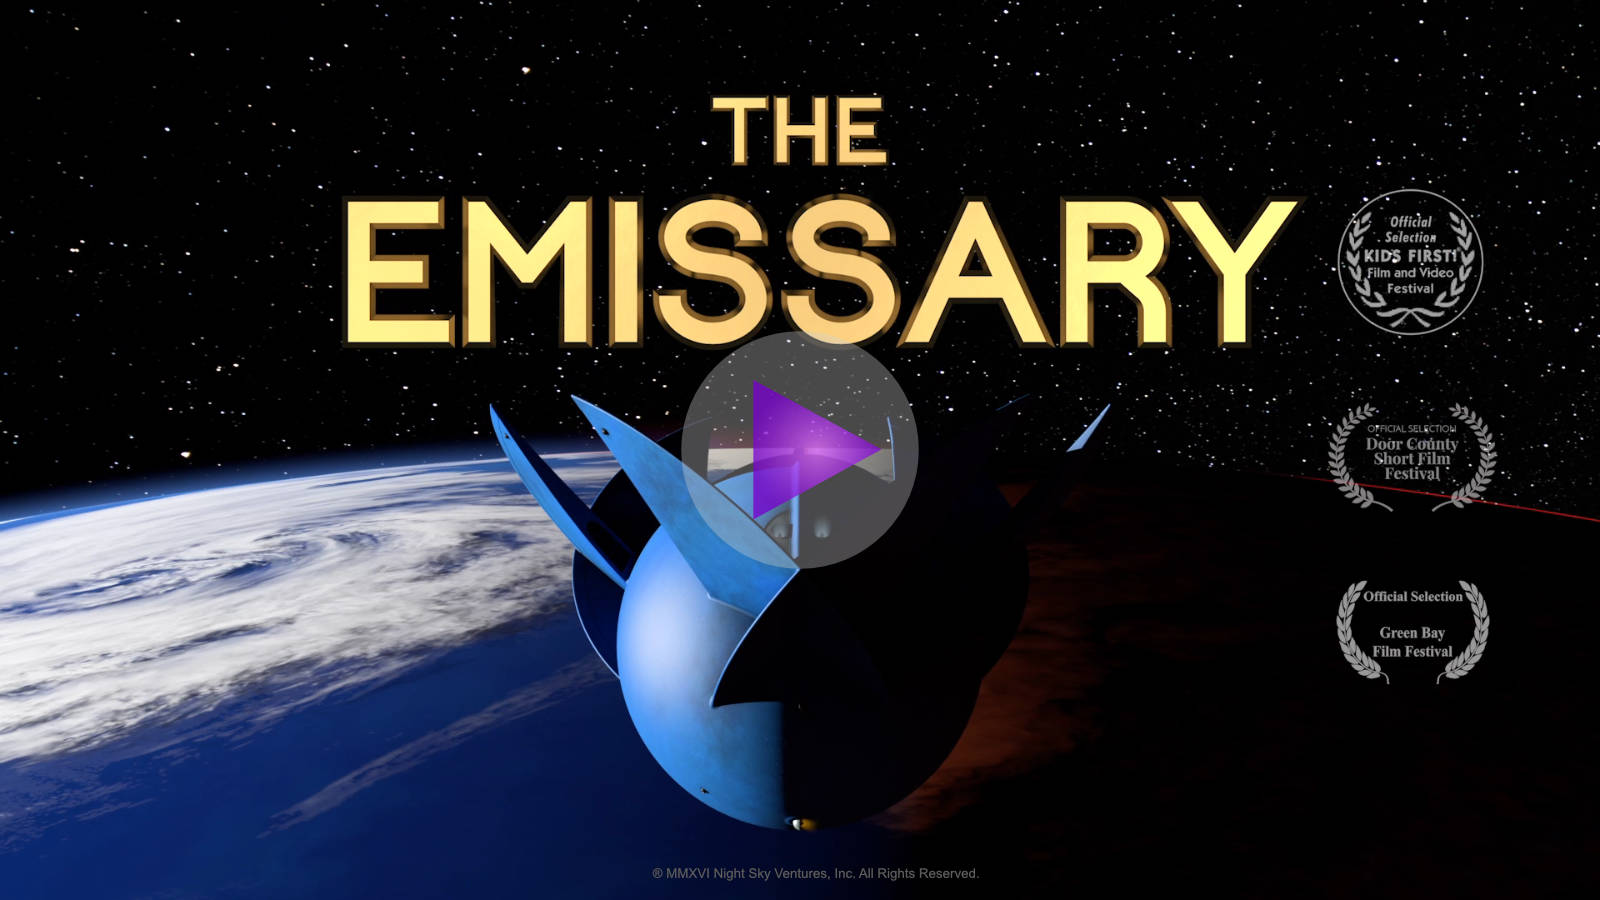 The Emissary Movie - Mindfulness from Outer Space